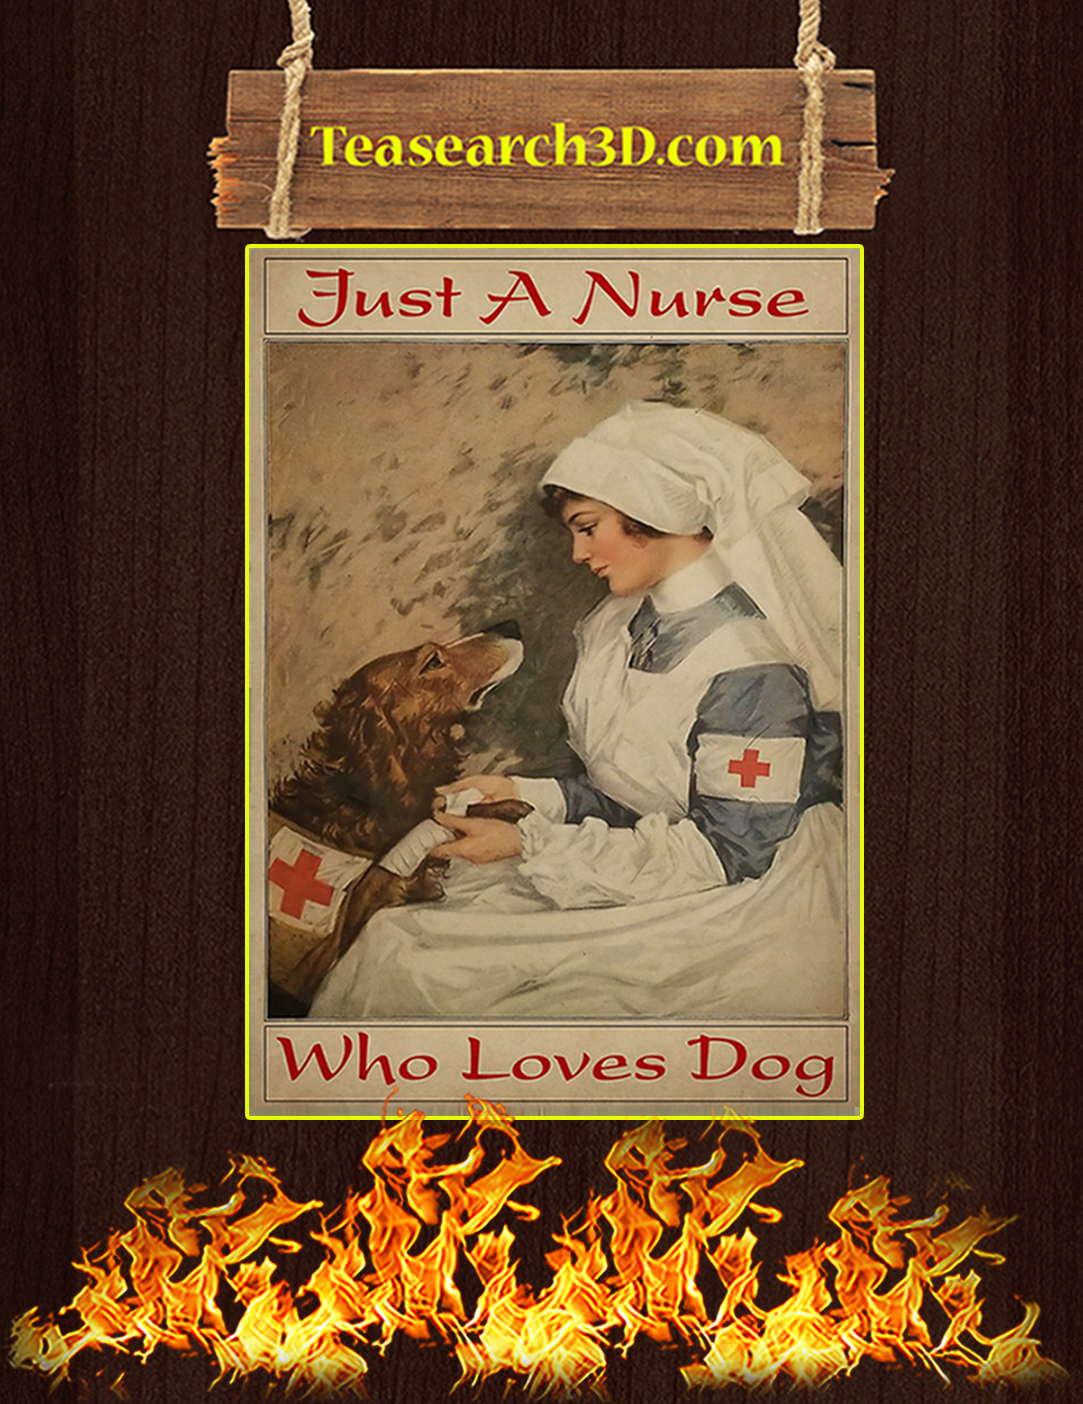 Just a nurse who loves dog poster A2